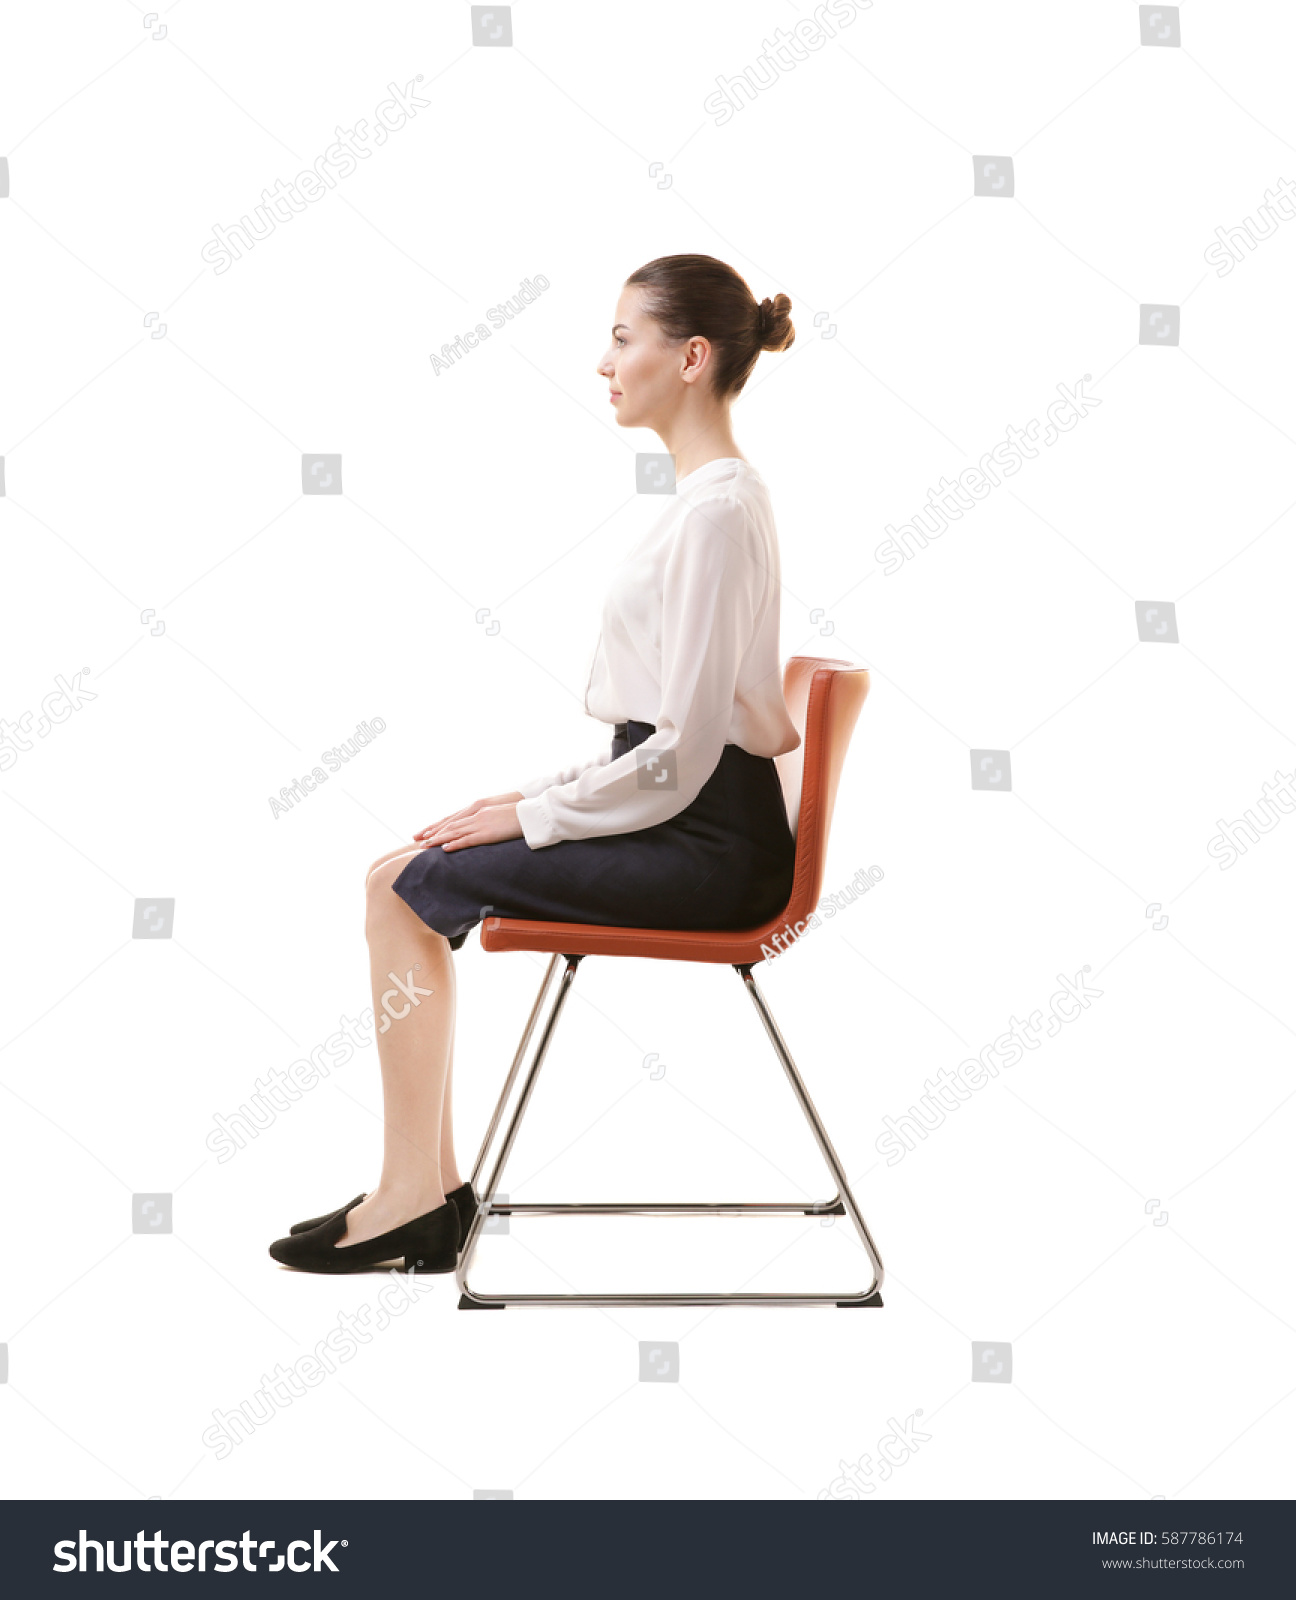 posture chair sitting memory foam bean bag reviews incorrect concept young woman stock photo